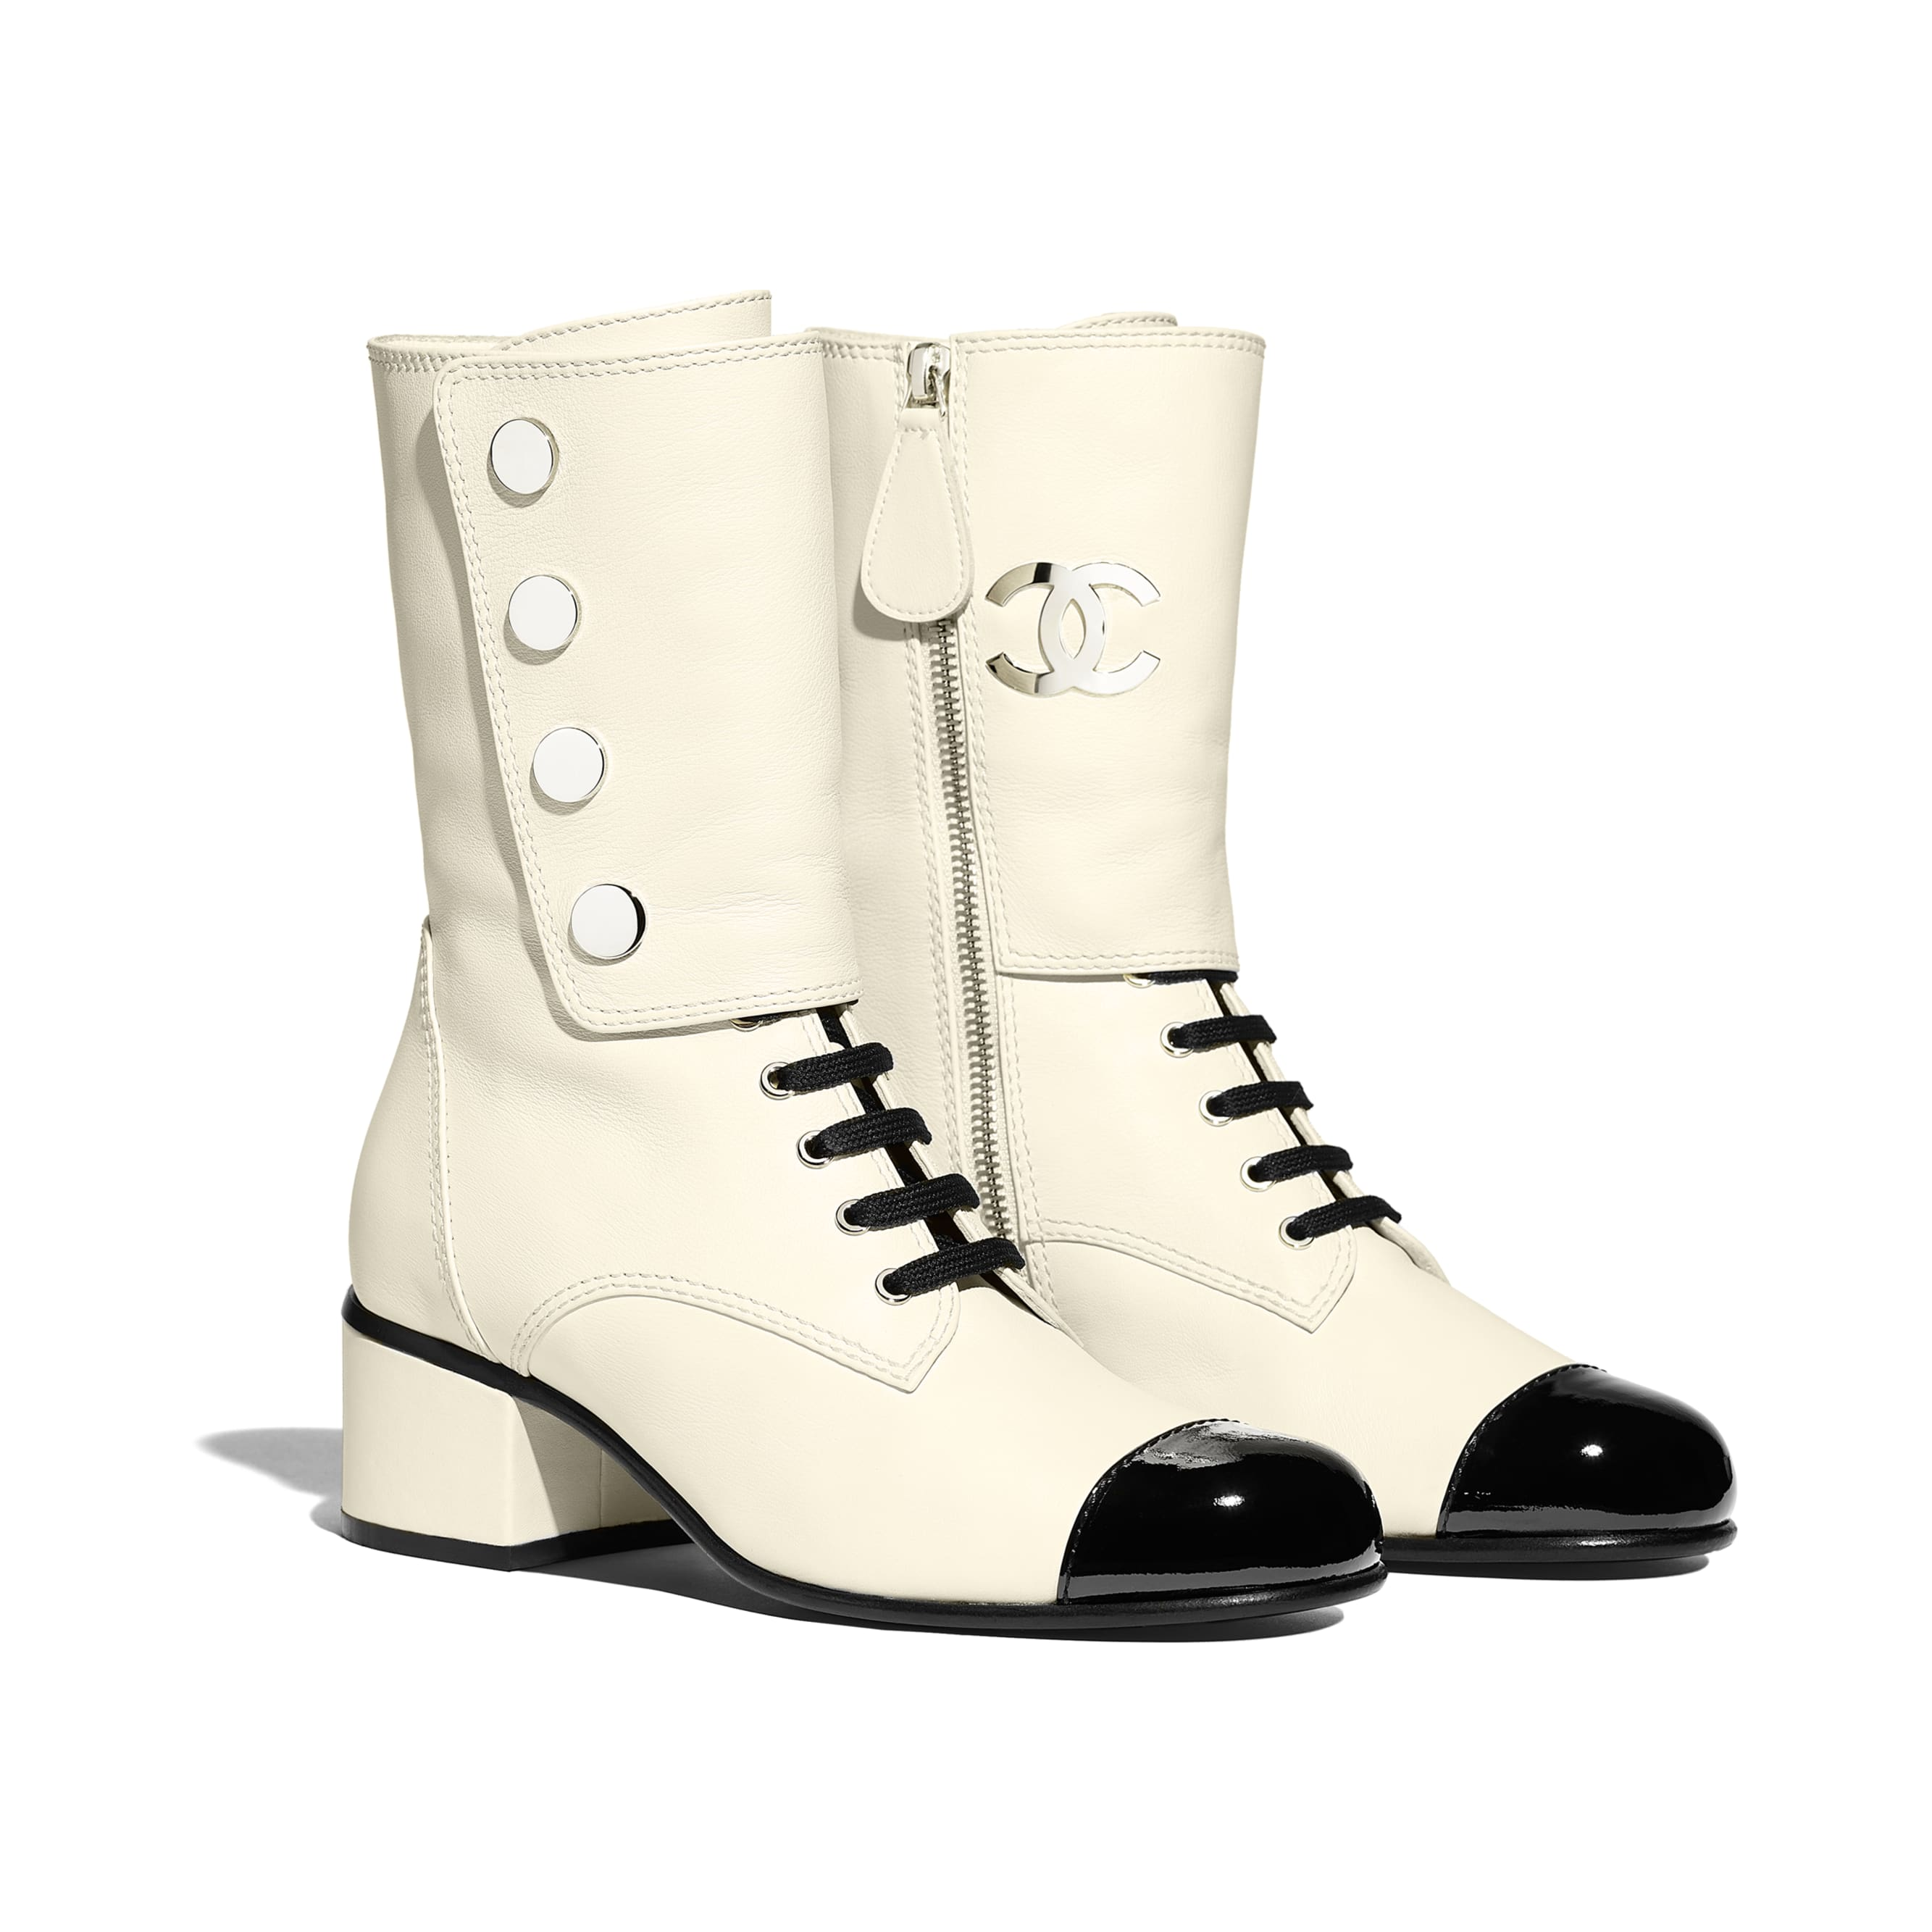 Ankle Boots - Ivory & Black - Calfskin & Patent Calfskin - Alternative view - see standard sized version